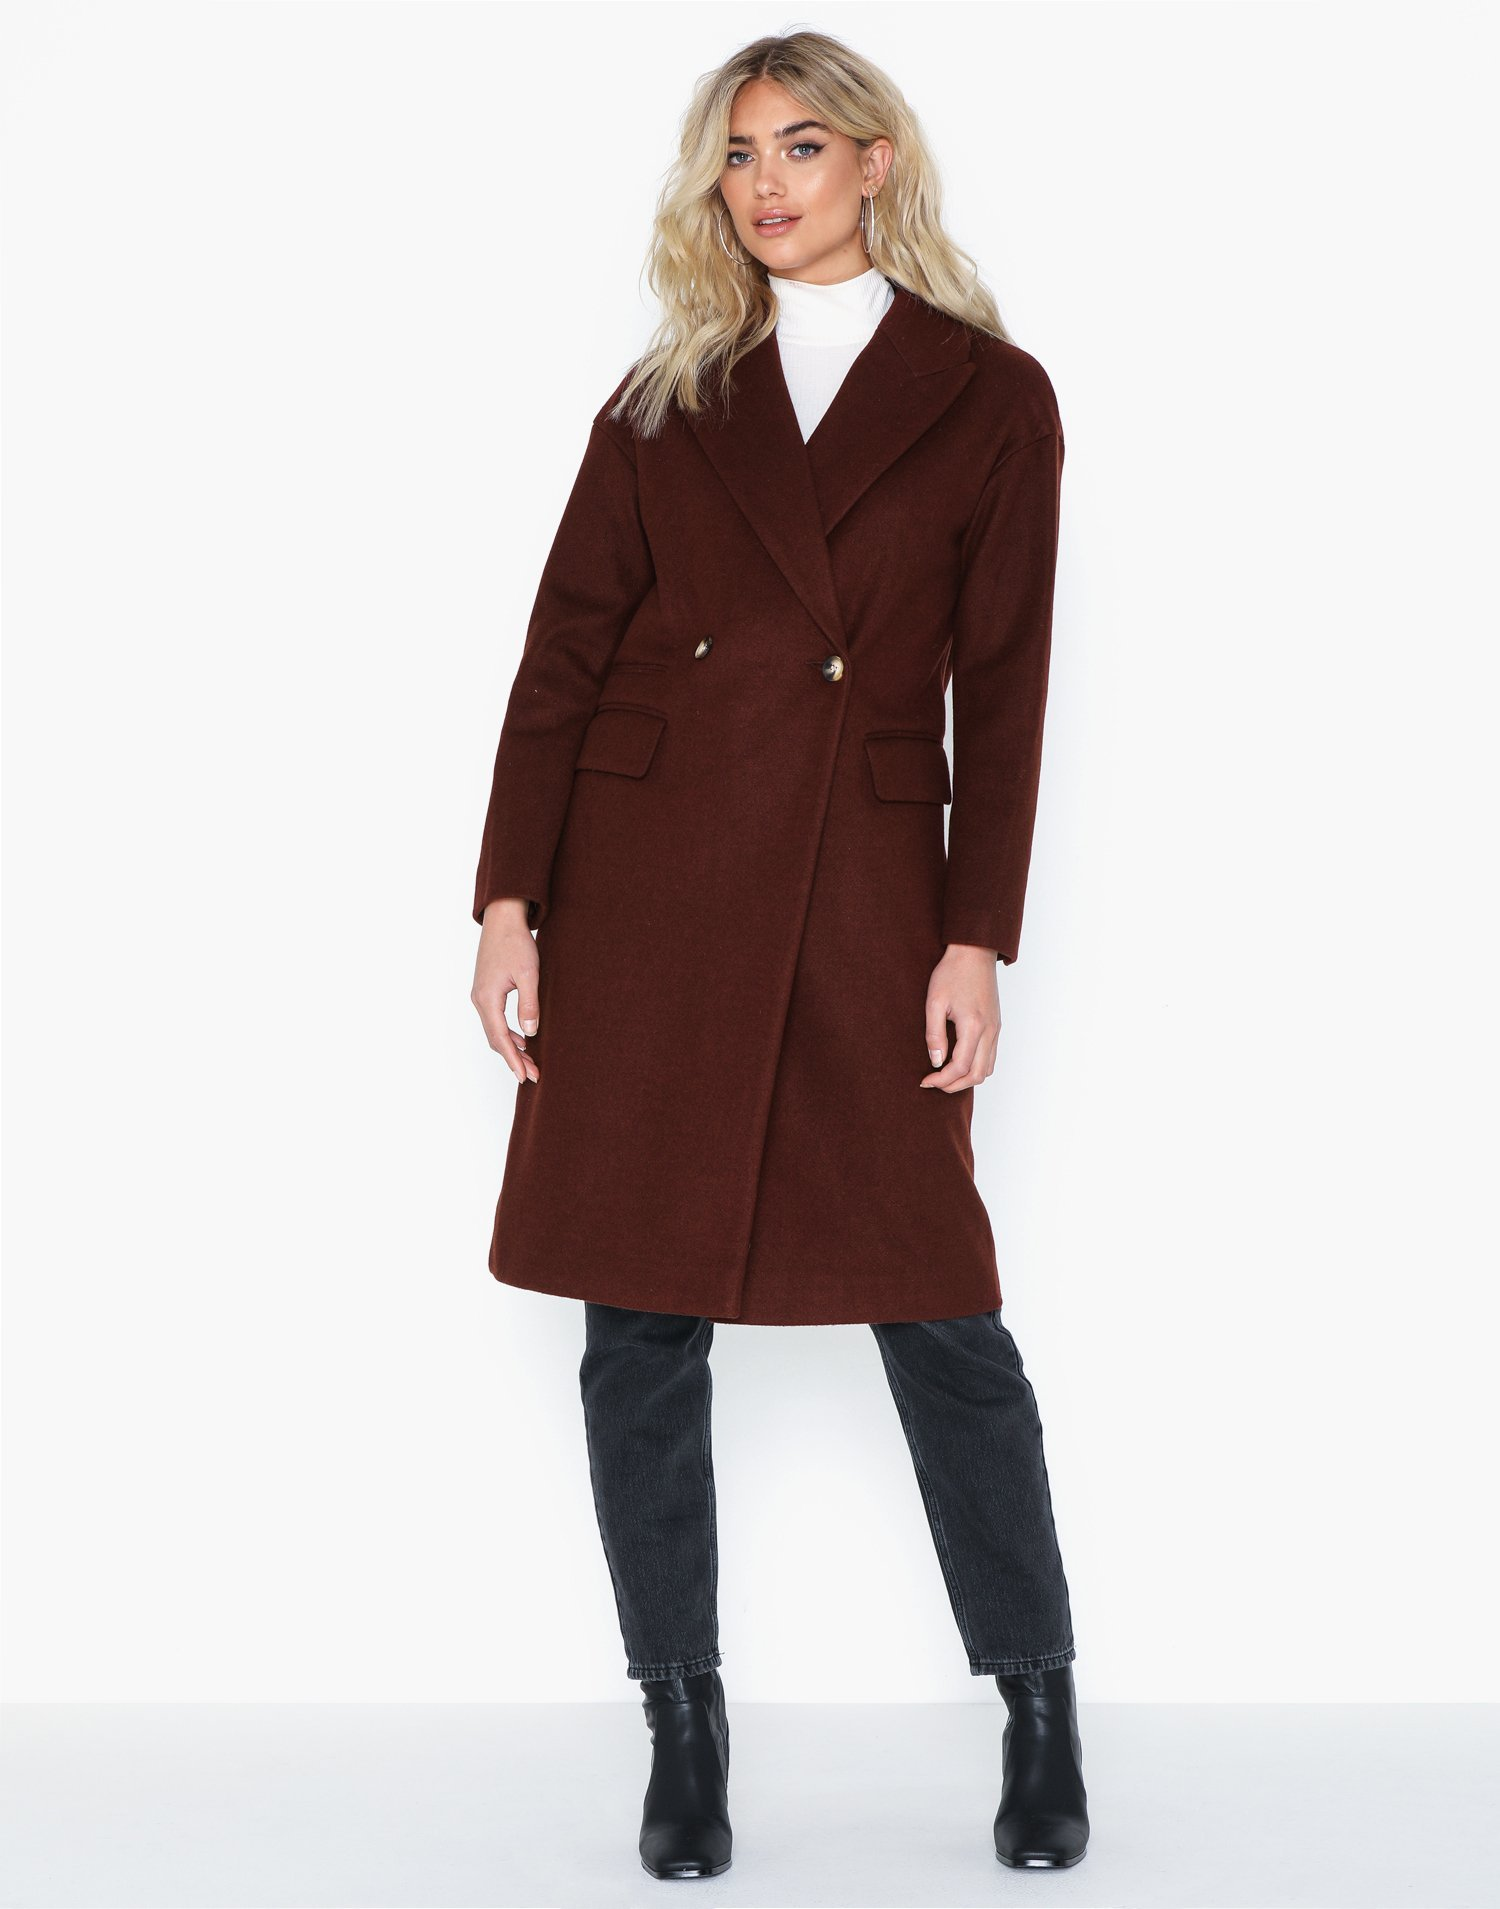 Burgundy Editor Overcoat by Topshop